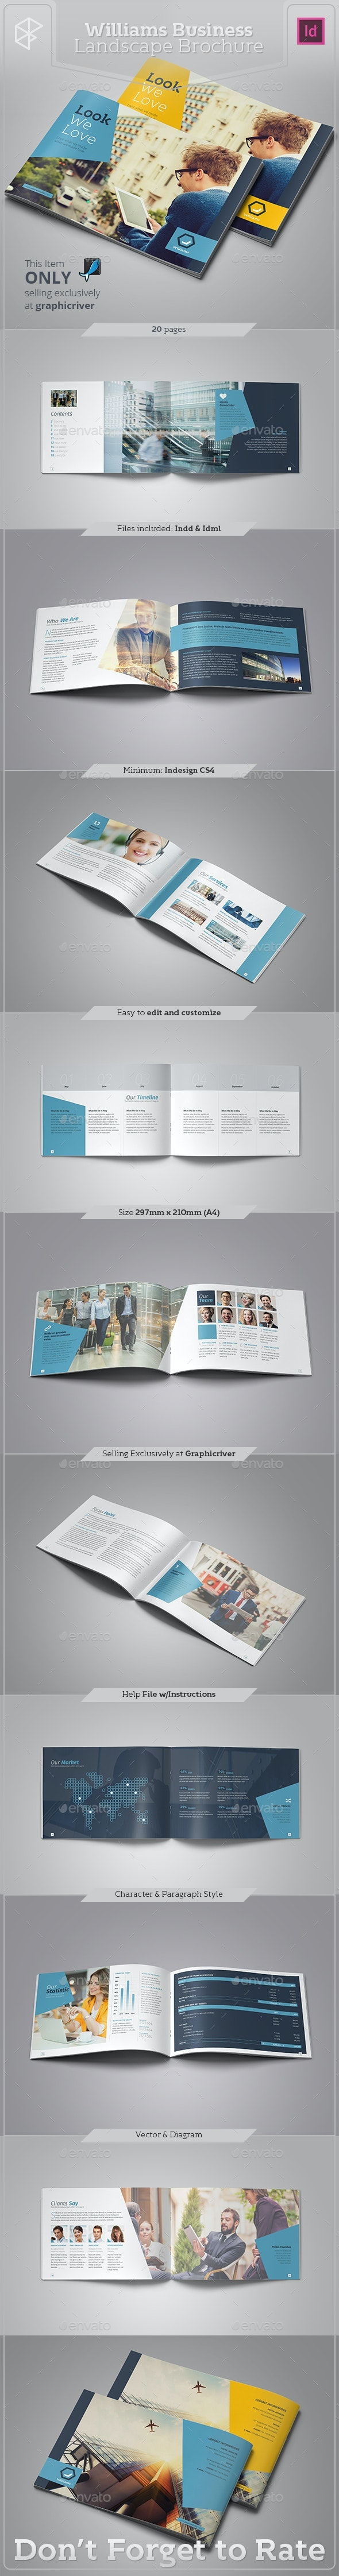 Williams Business Landscape Brochure - Corporate Brochures